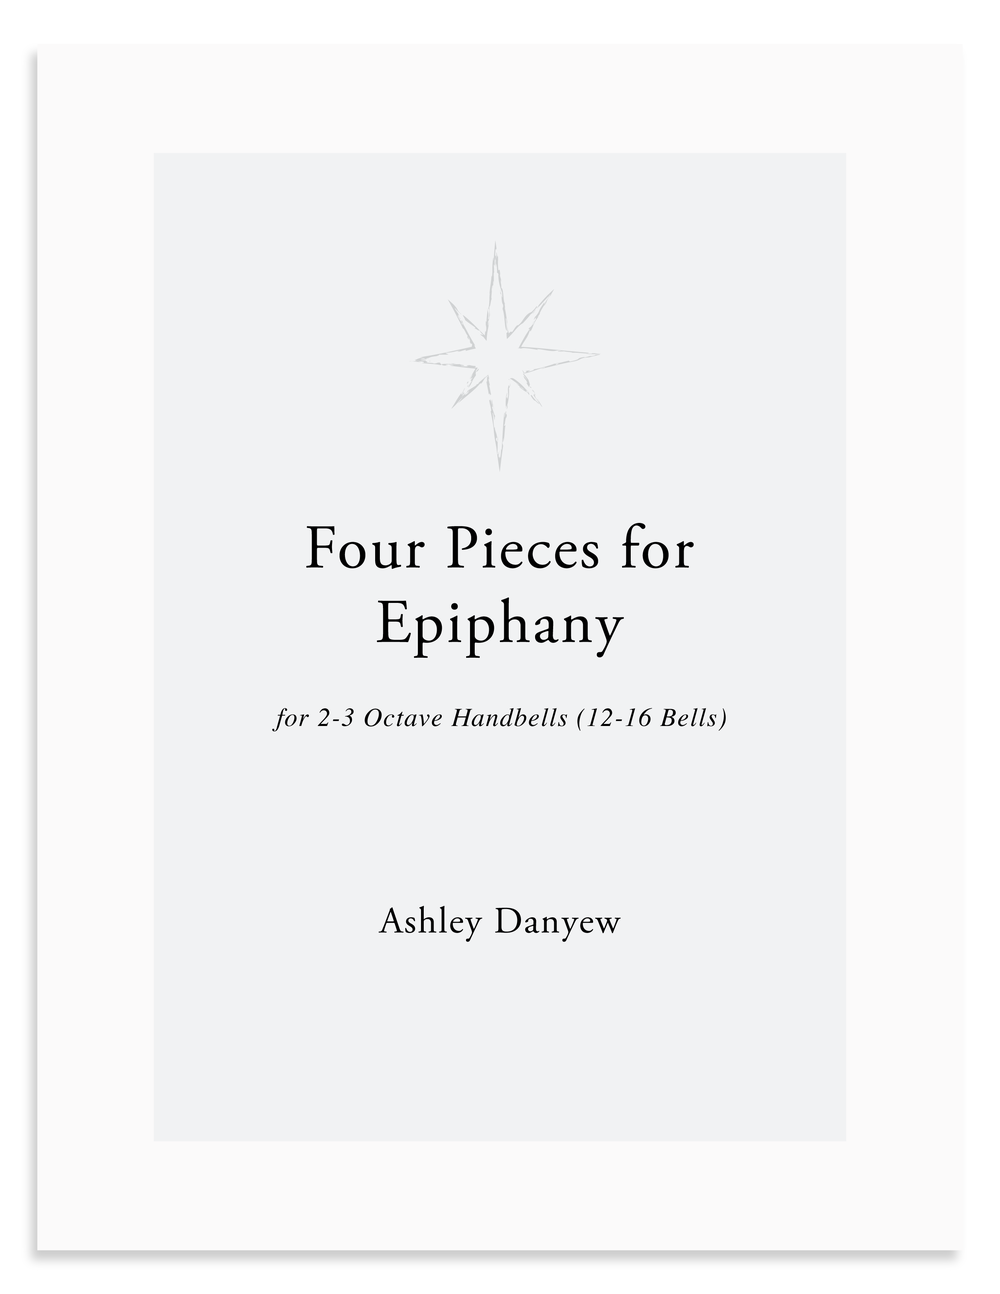 Four Pieces for Epiphany - a digital collection for 2-3 octave handbells (12-16 bells).png